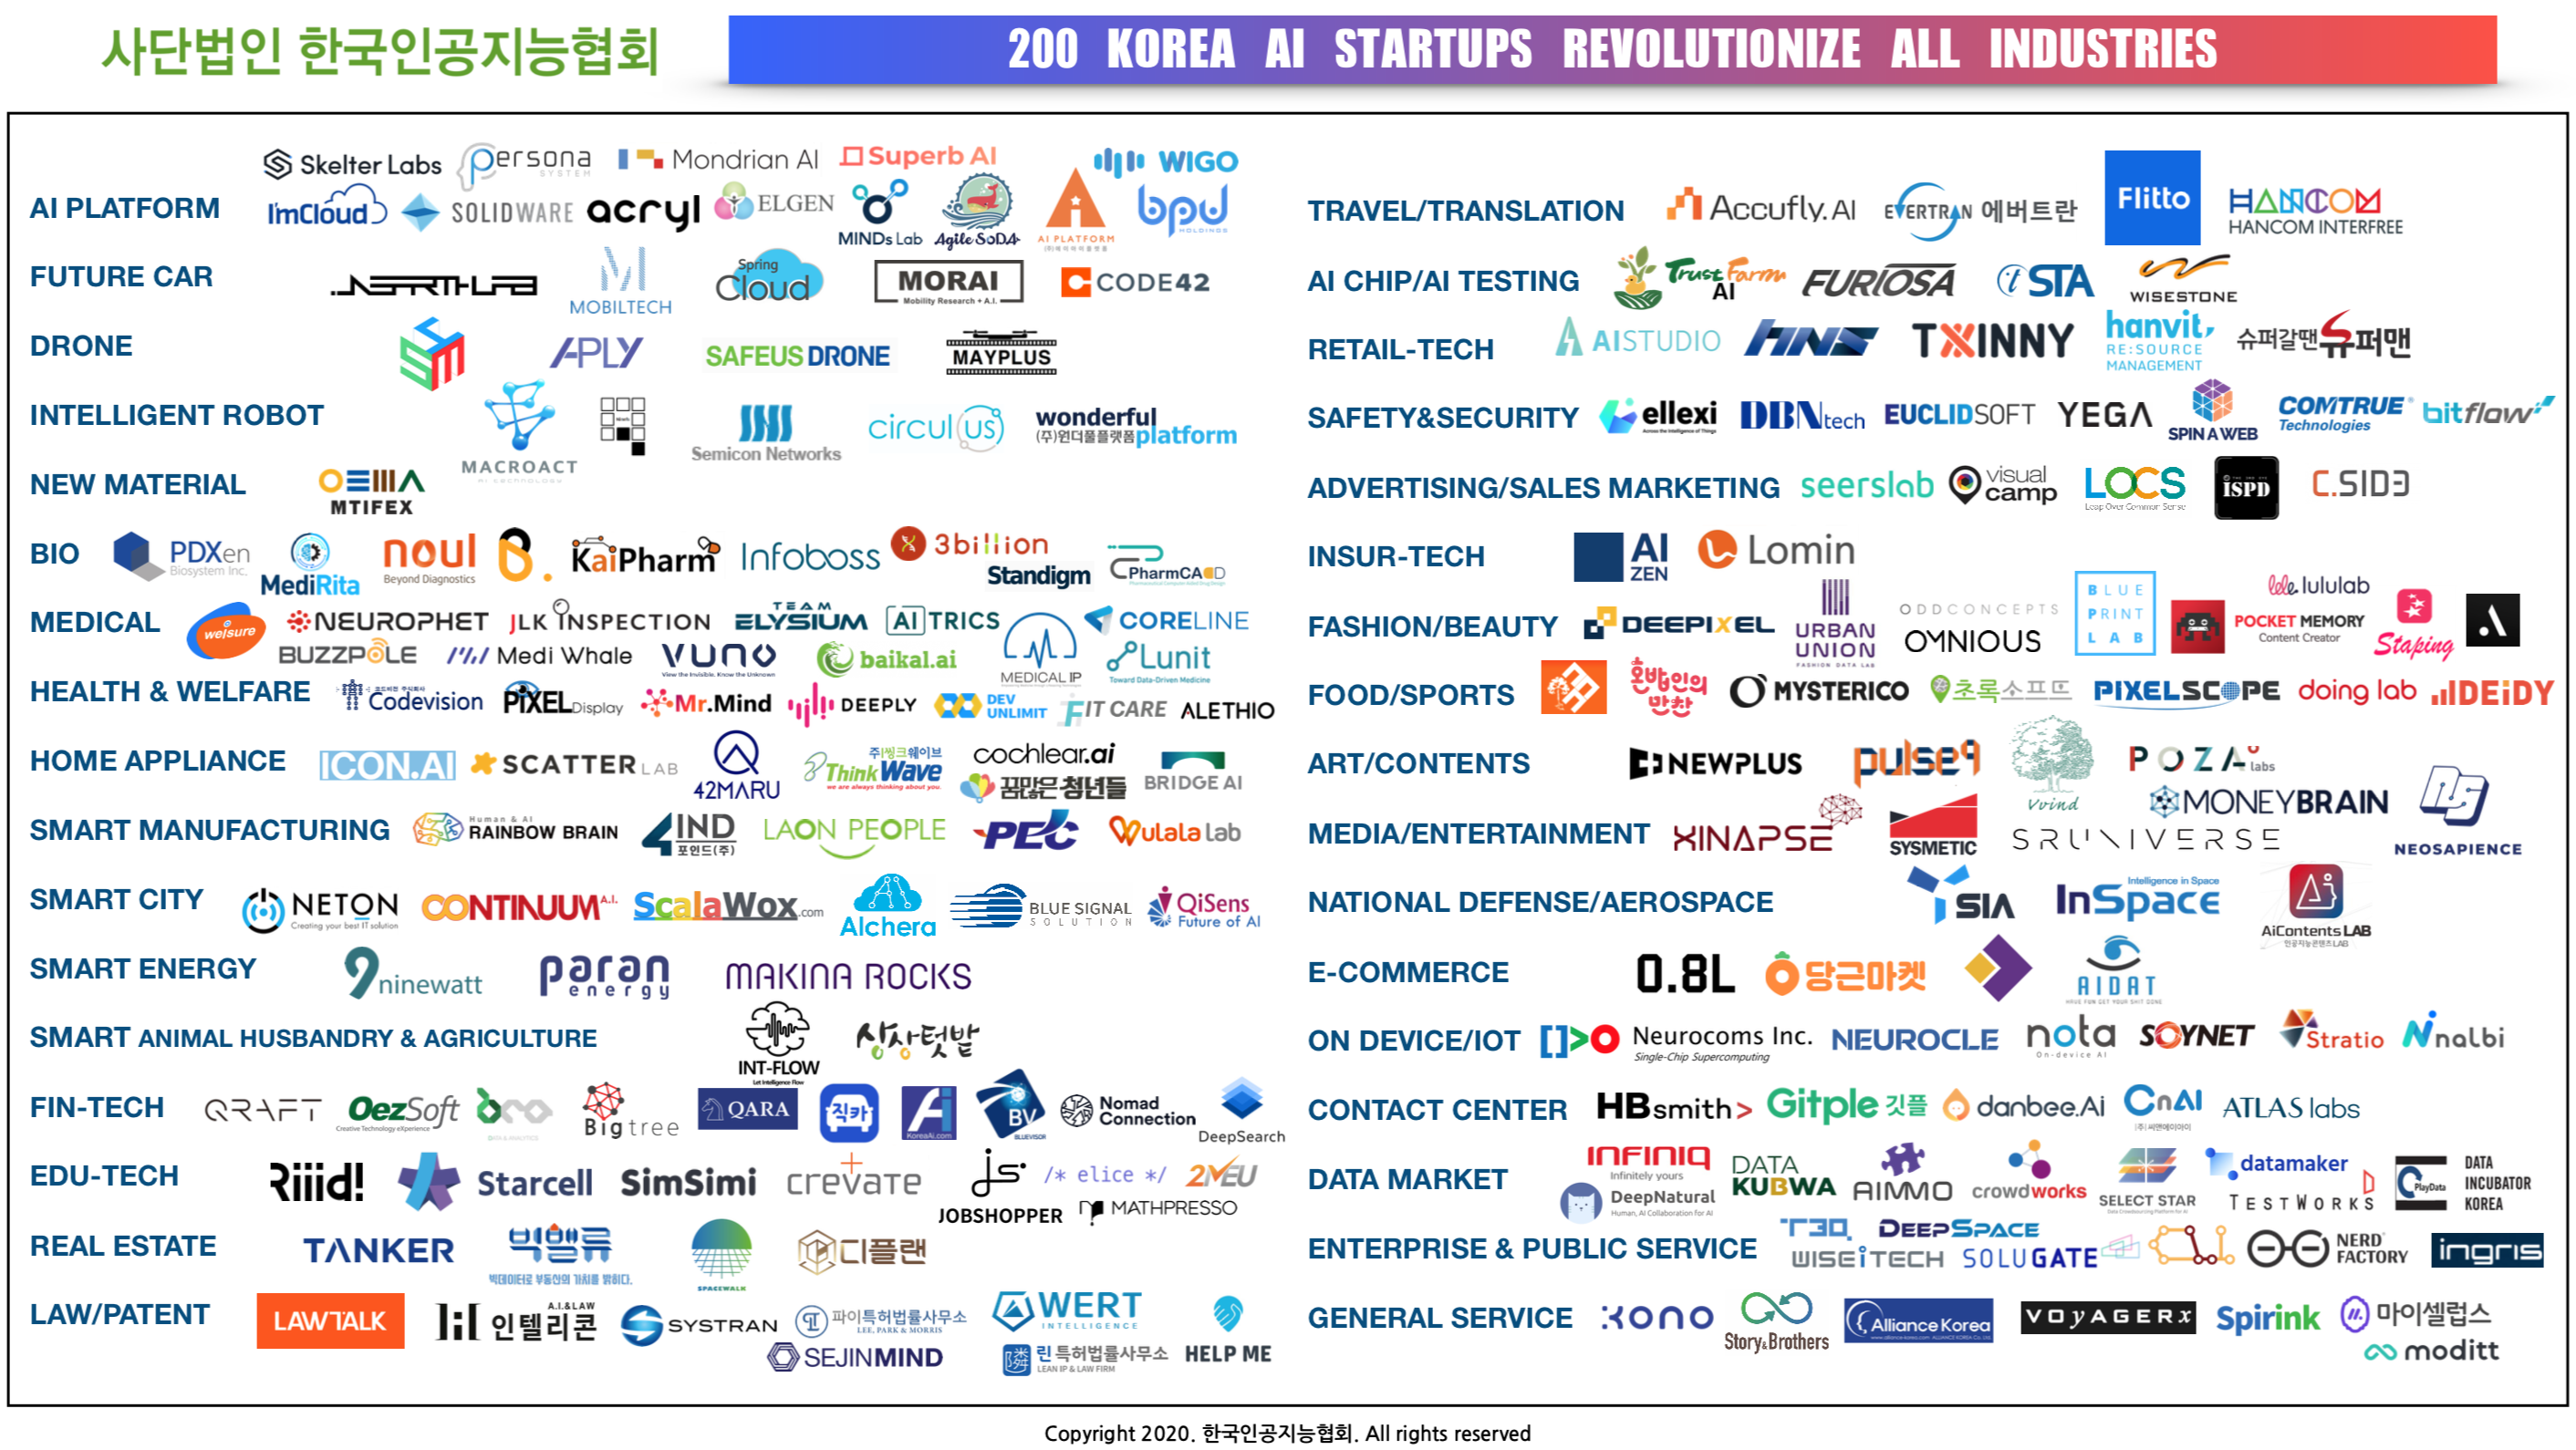 200-korea-ai-startups-by-2020